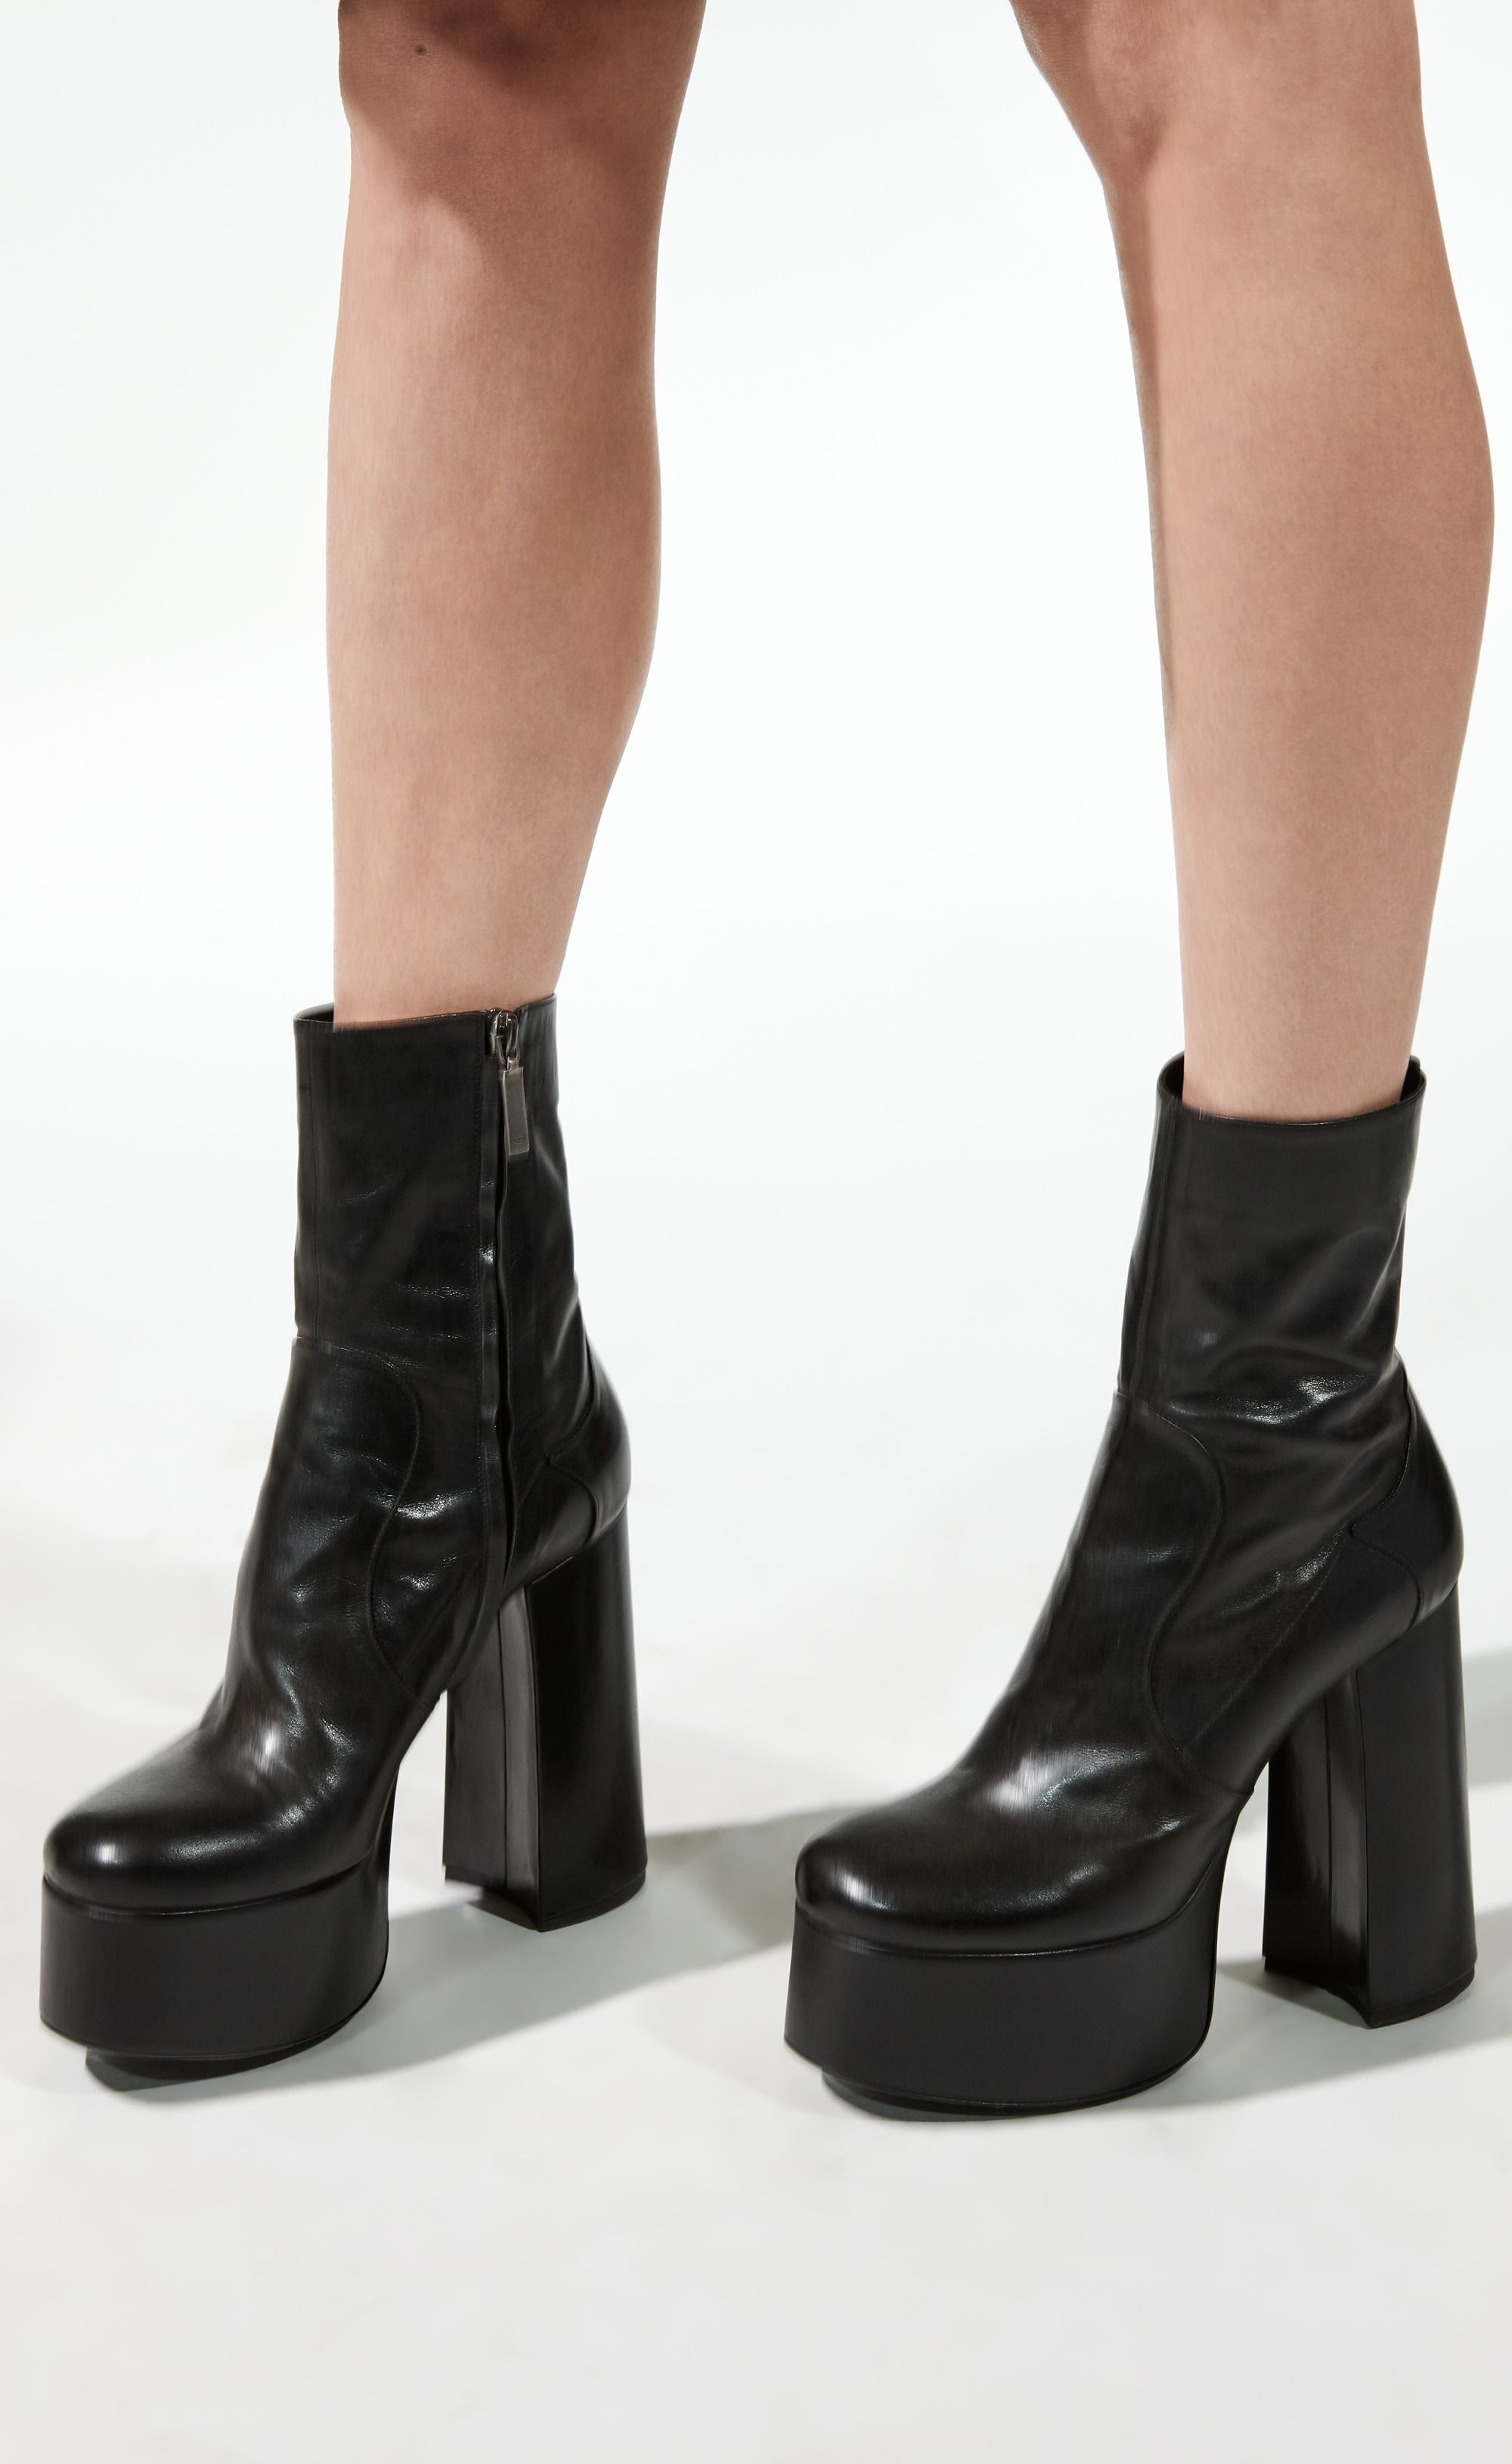 dbbd1a5b27e Saint Laurent Billy Platform Bootie In Leather